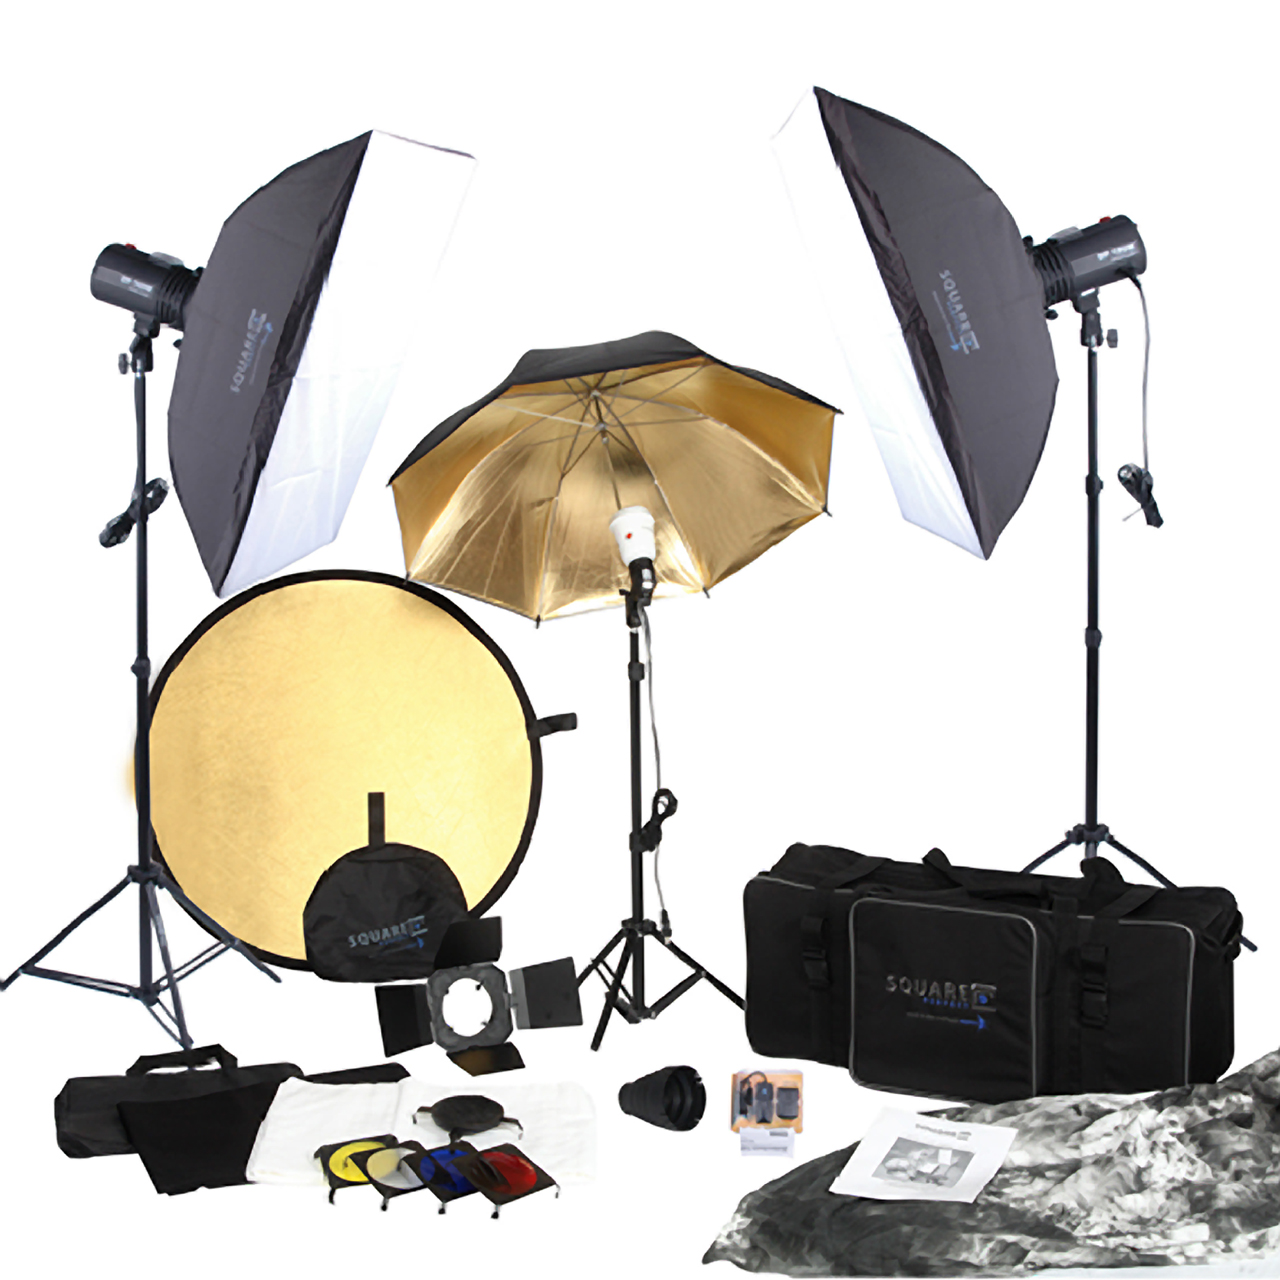 5080 sp3500 flash kit__1.jpg